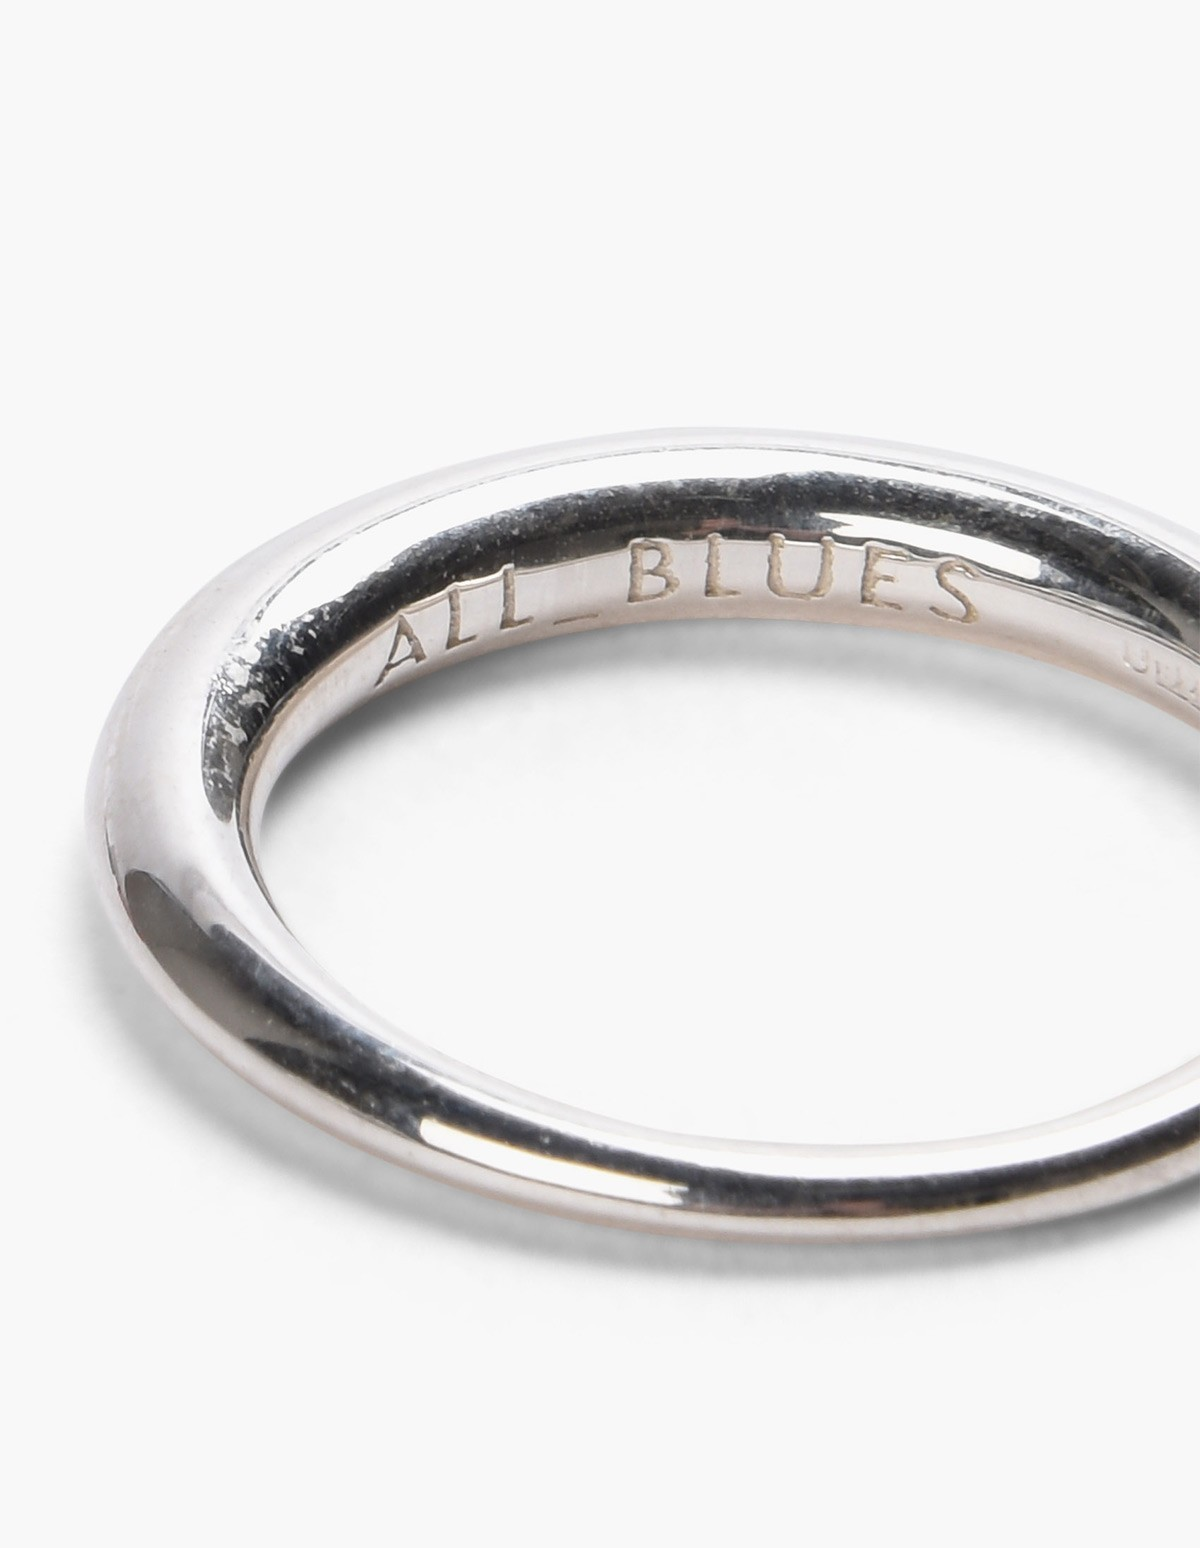 All Blues  Hungry Snake Ring - Polished Silver  in Silver